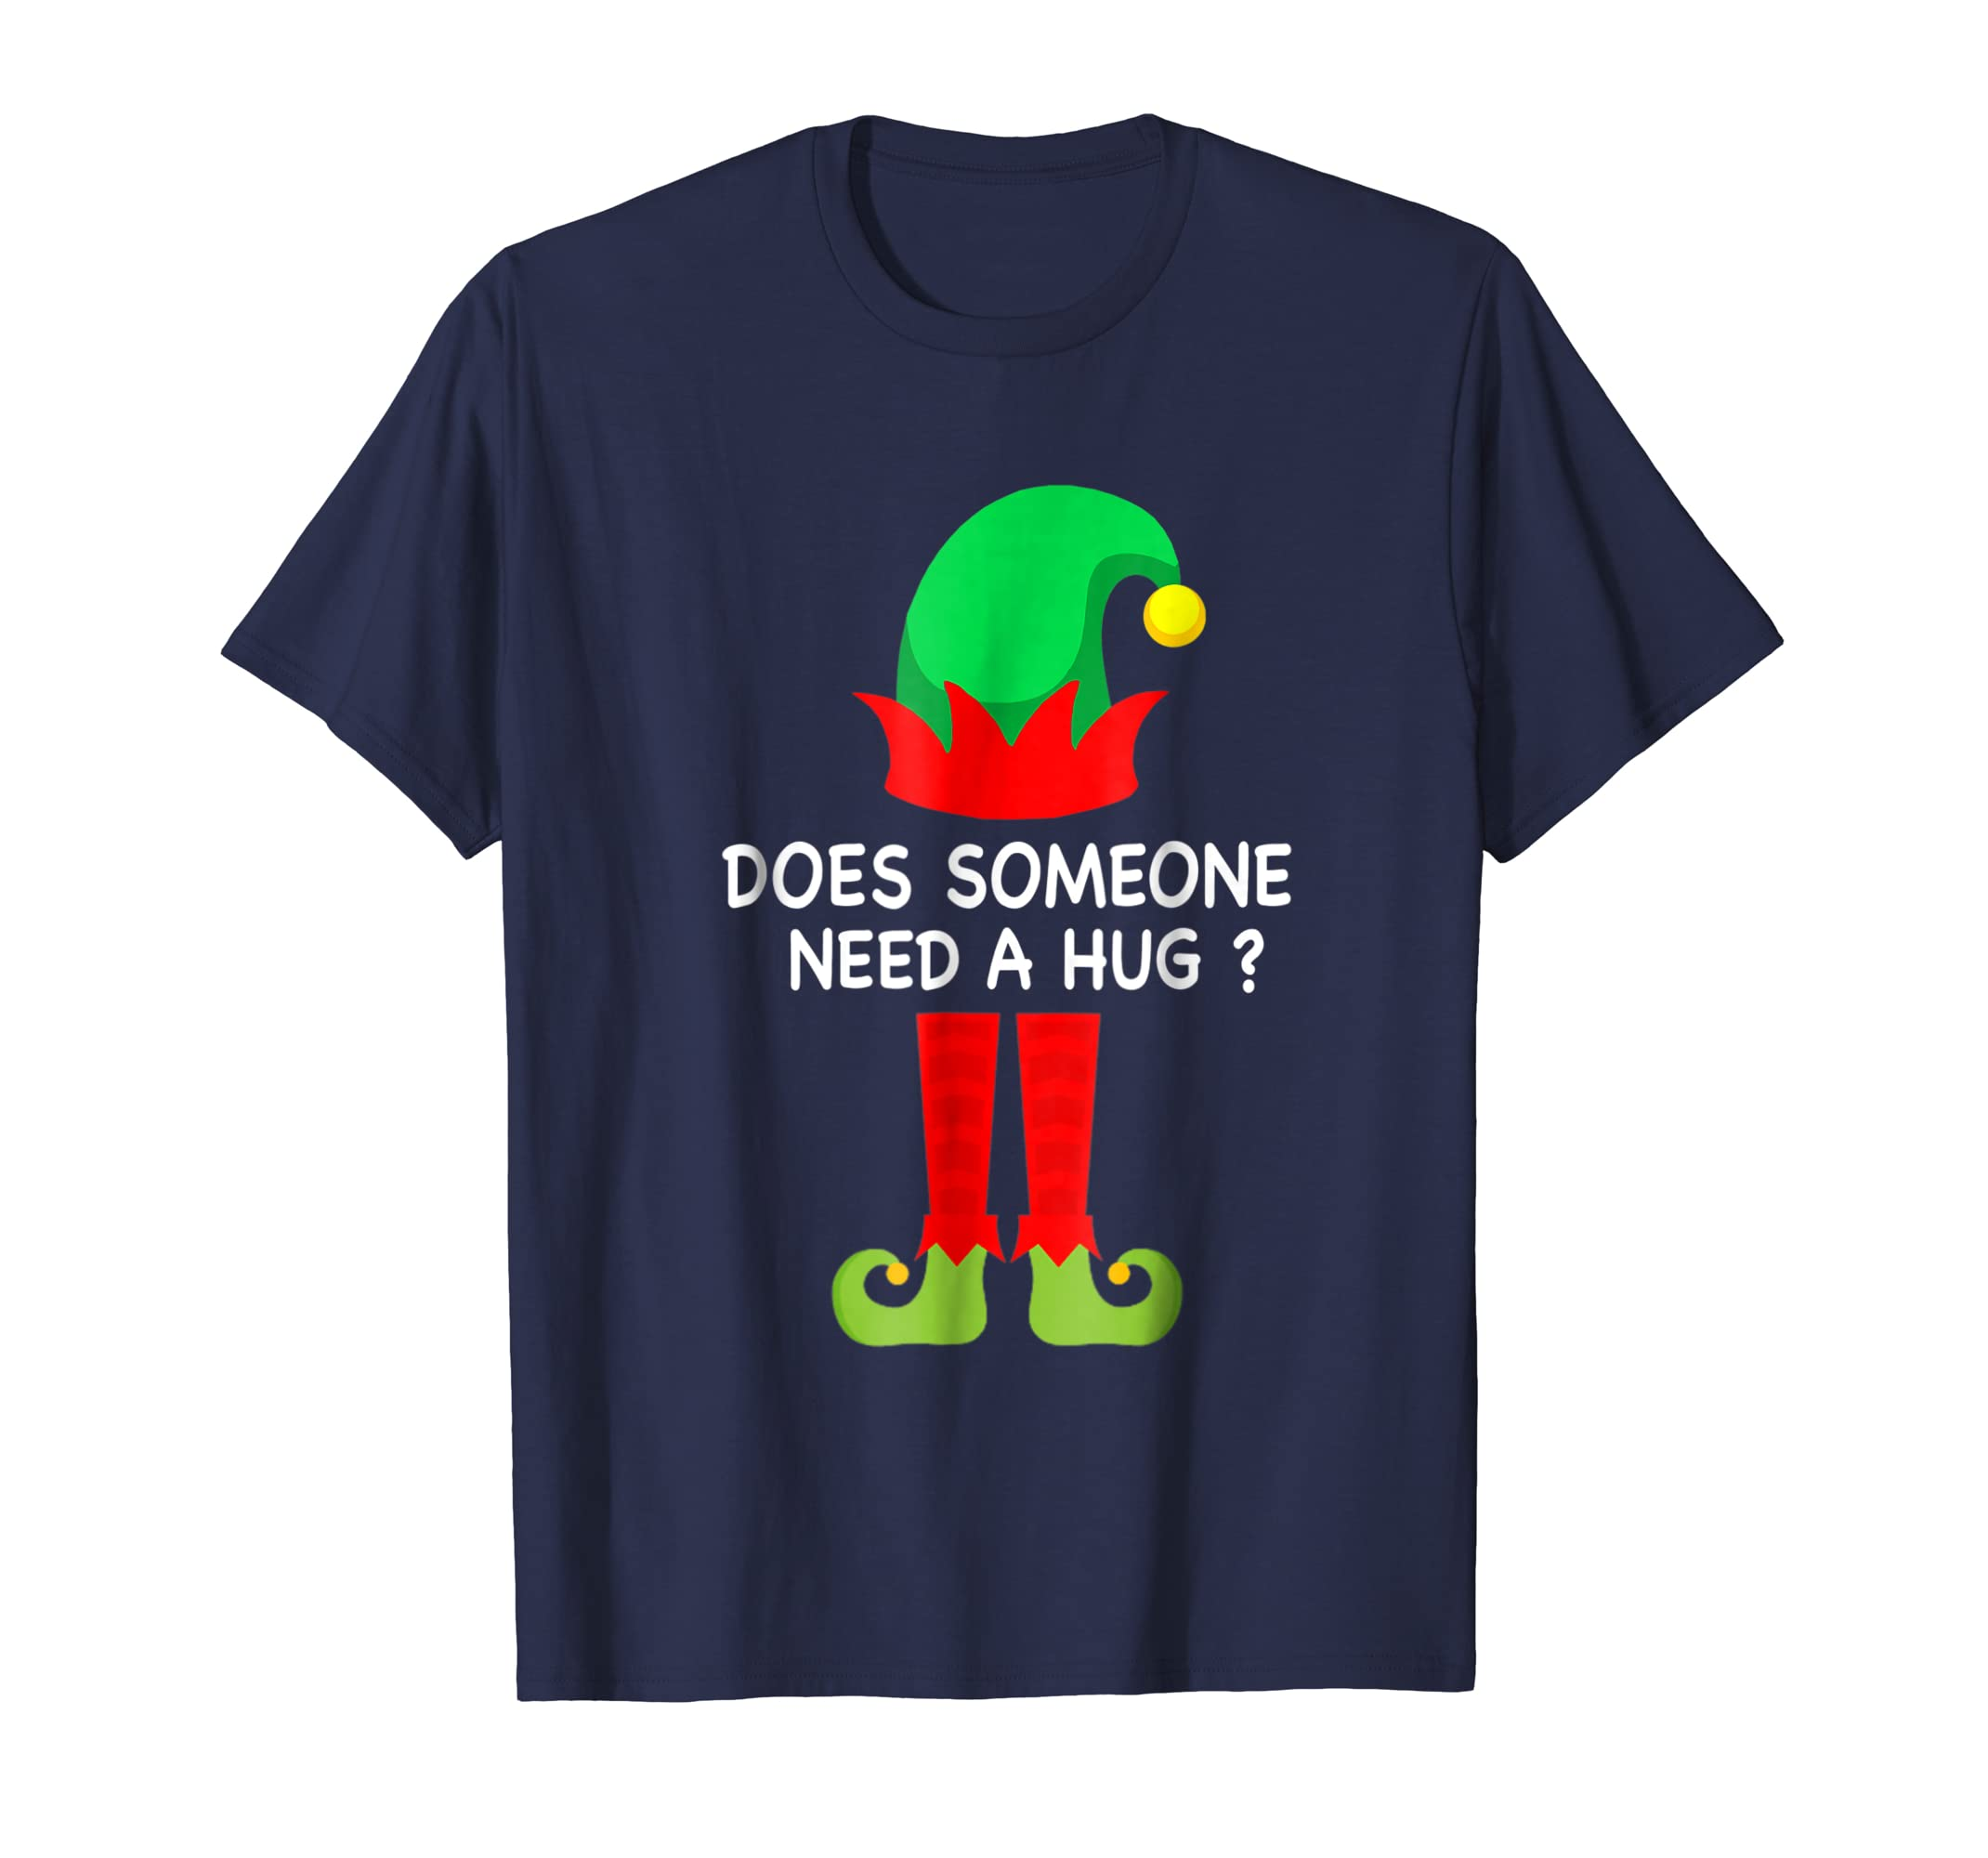 Does someone need a hug? Funny eft t-shirt Great gift shirt-SFL